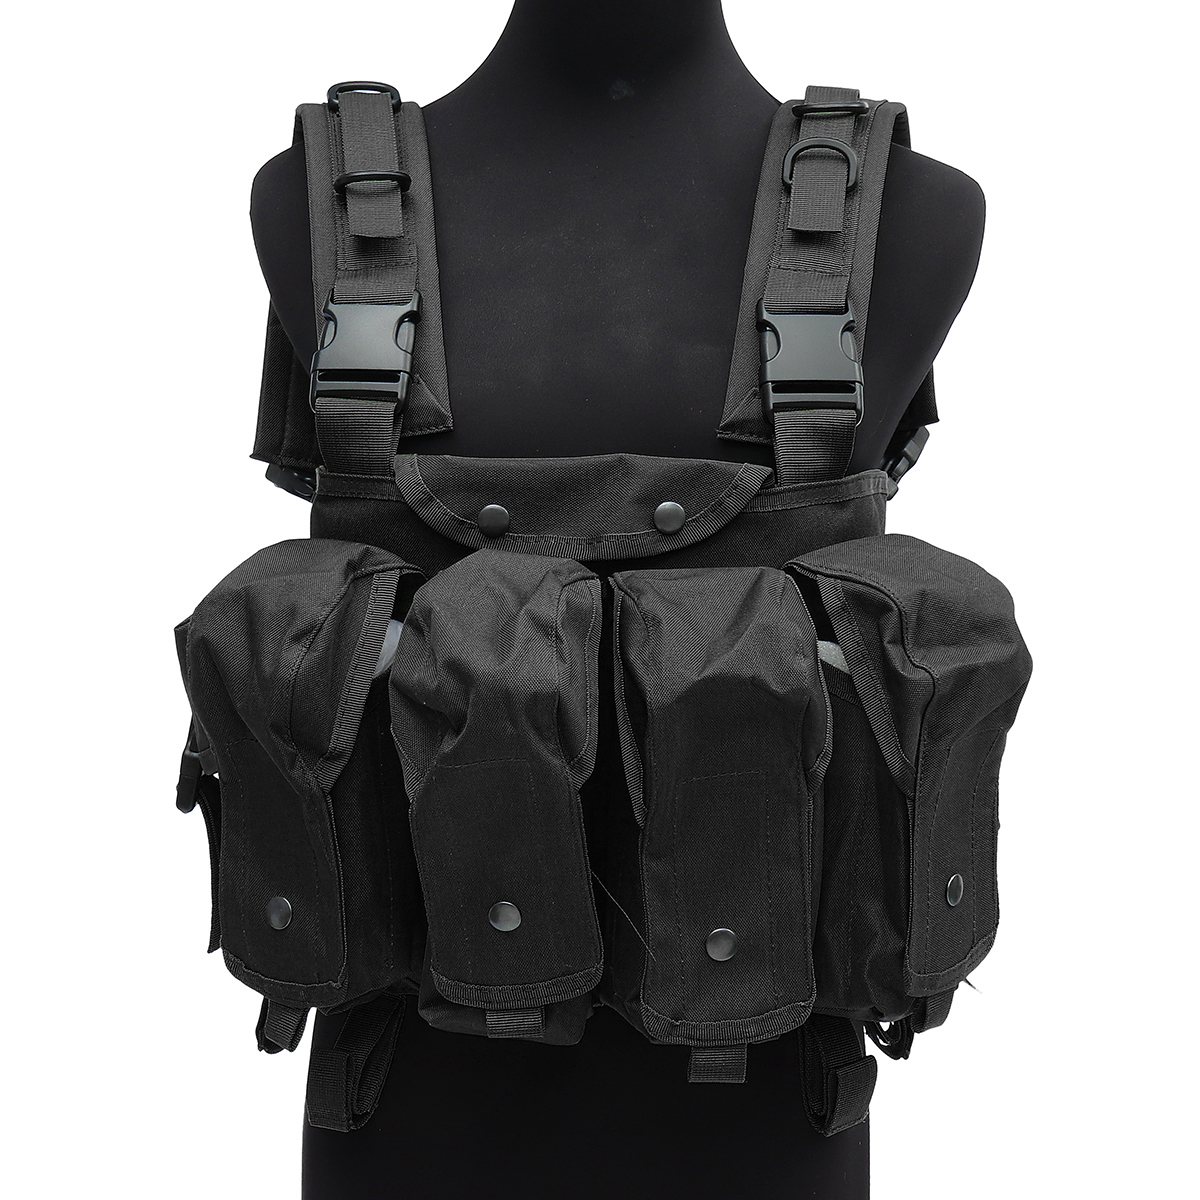 Chaleco táctico unisex al aire libre Combat Game Training Storage Carrier Belly Pocket Vest